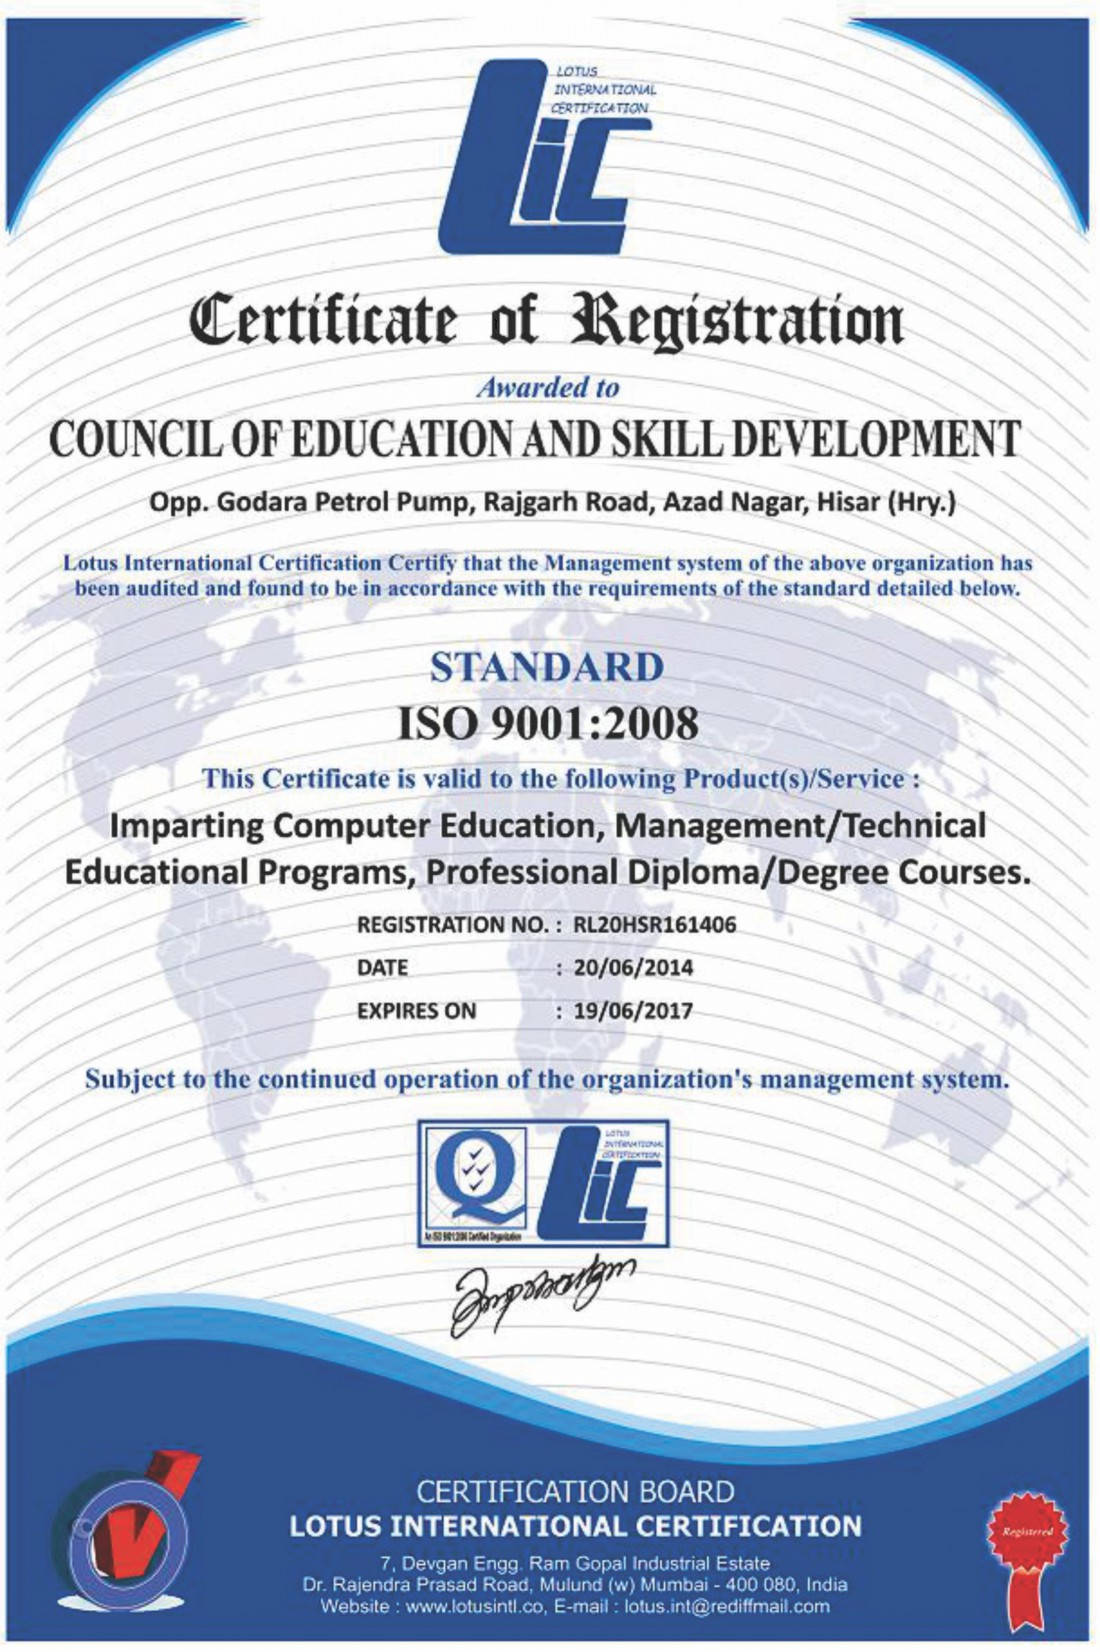 certification_registration